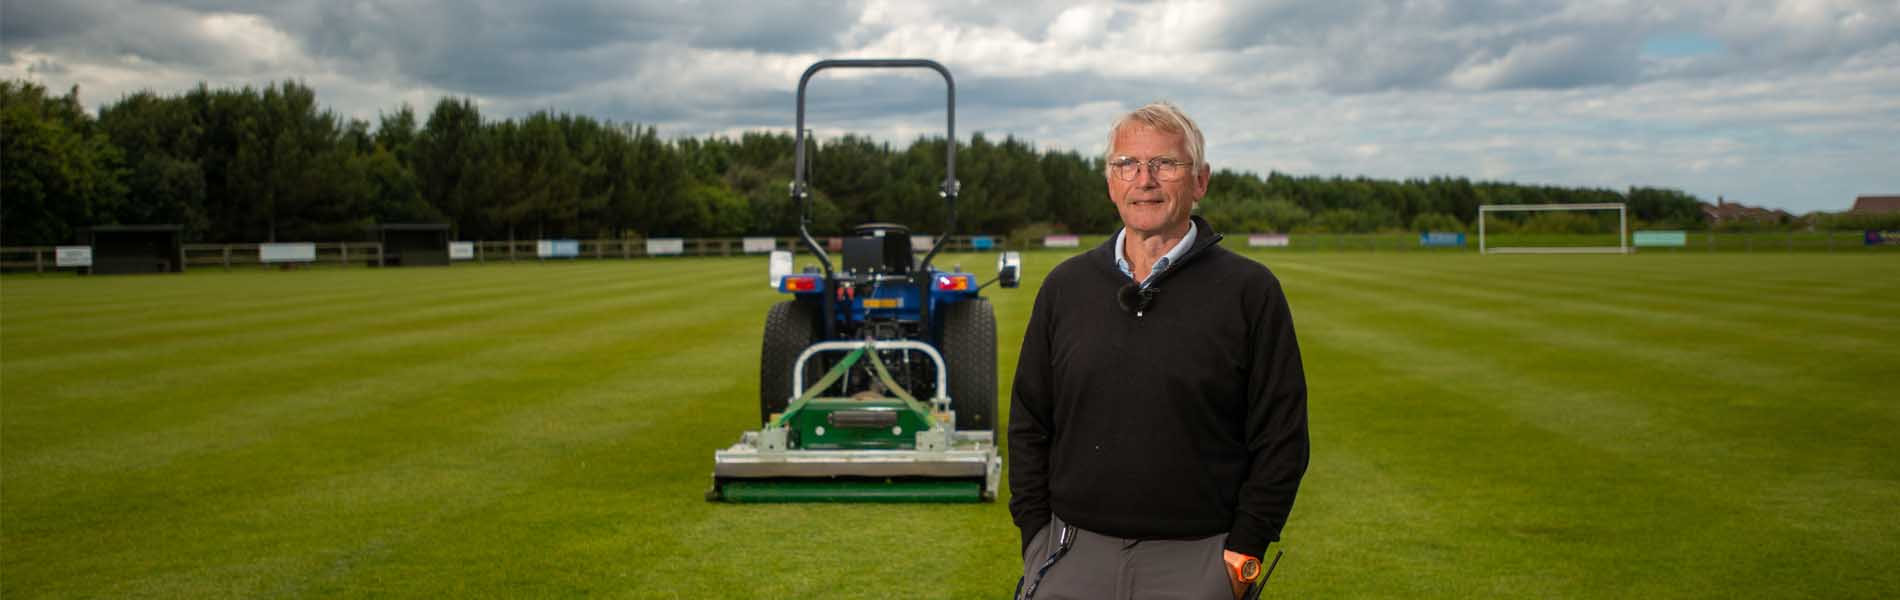 a major mower with a blue compact tractor with the owner